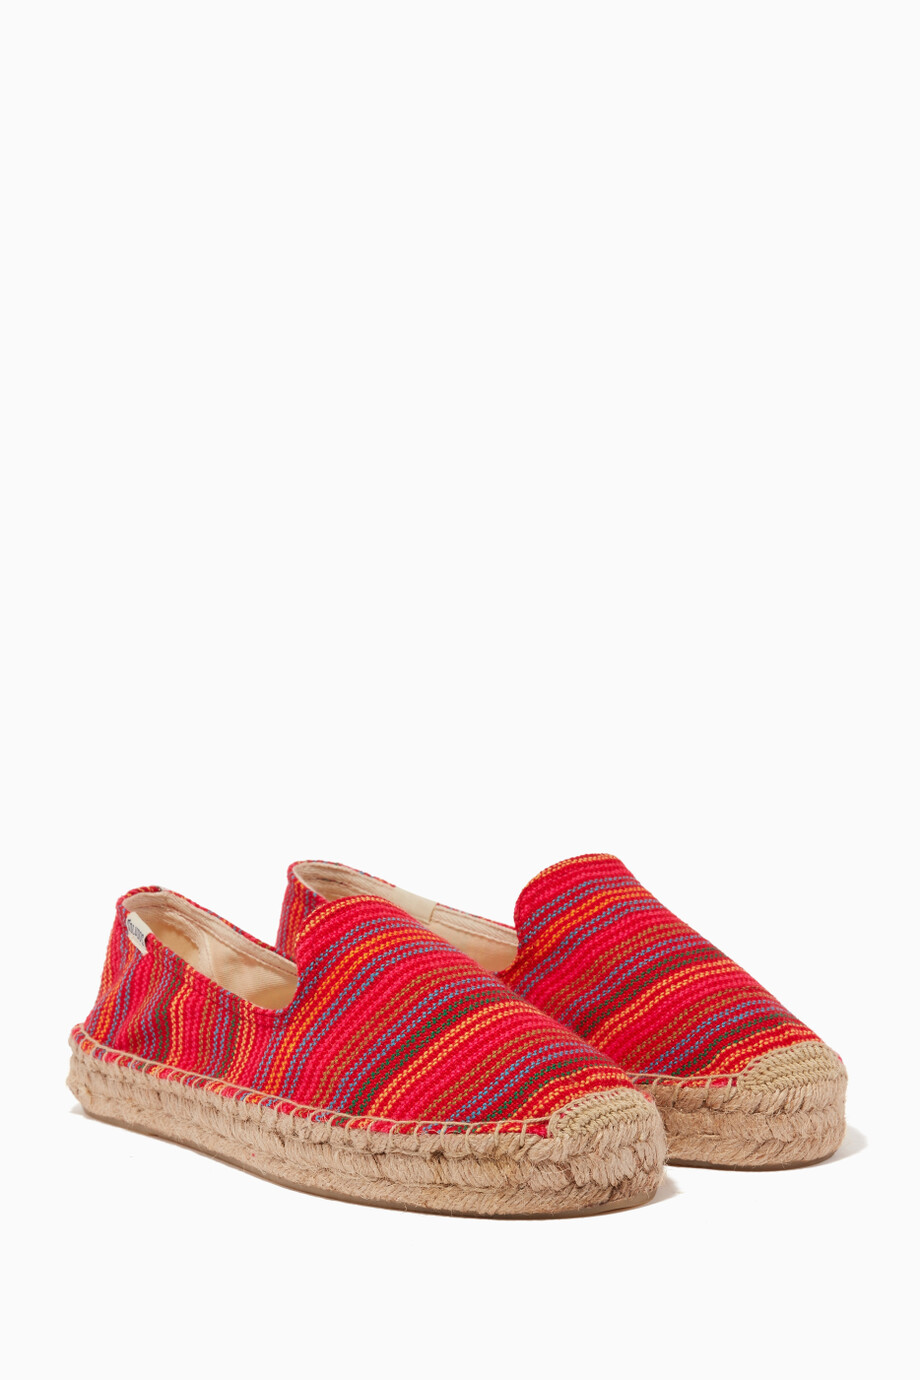 5831710bd87 Shop Soludos Red Red Baja Striped Espadrille Smoking Slipper for ...